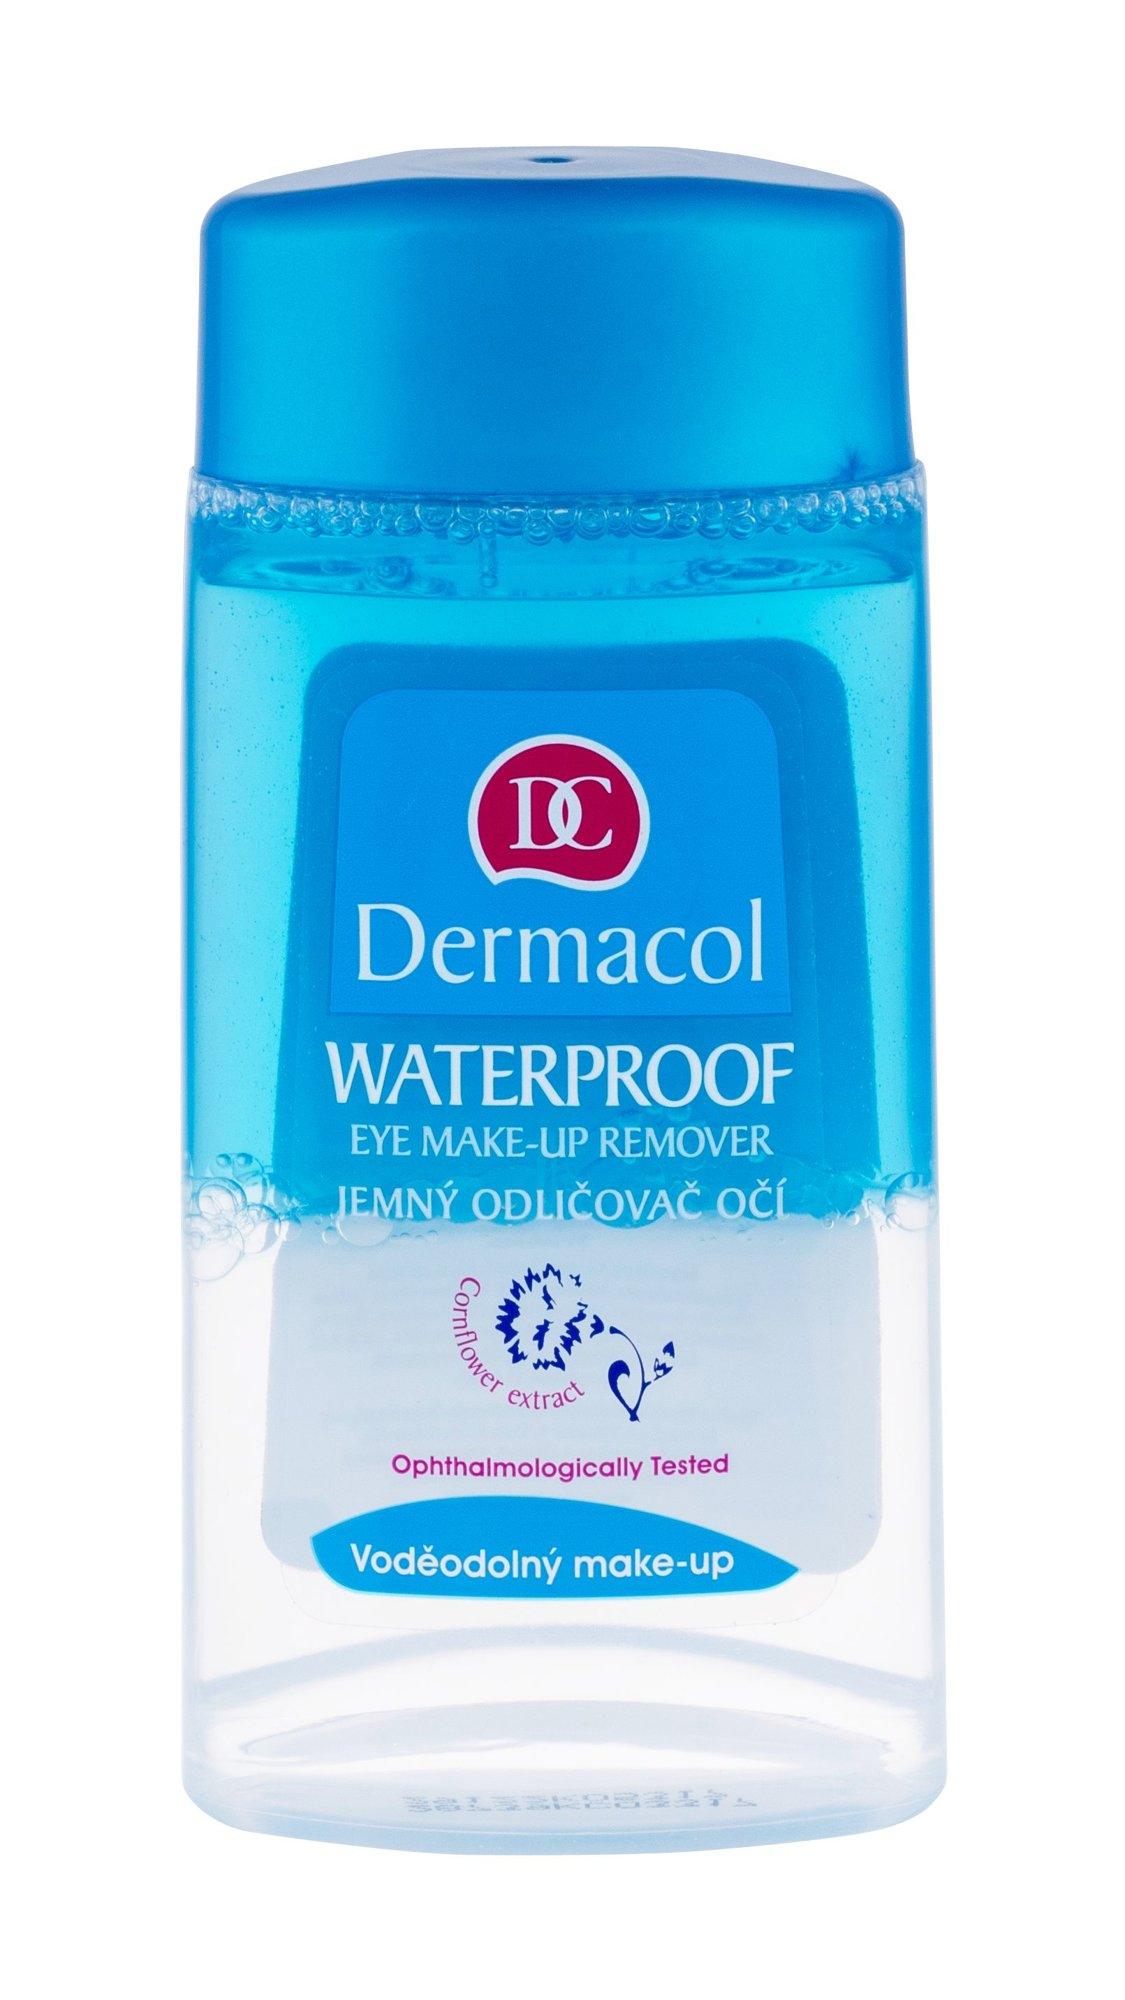 Dermacol Waterproof Eye Make-up Remover Cosmetic 120ml